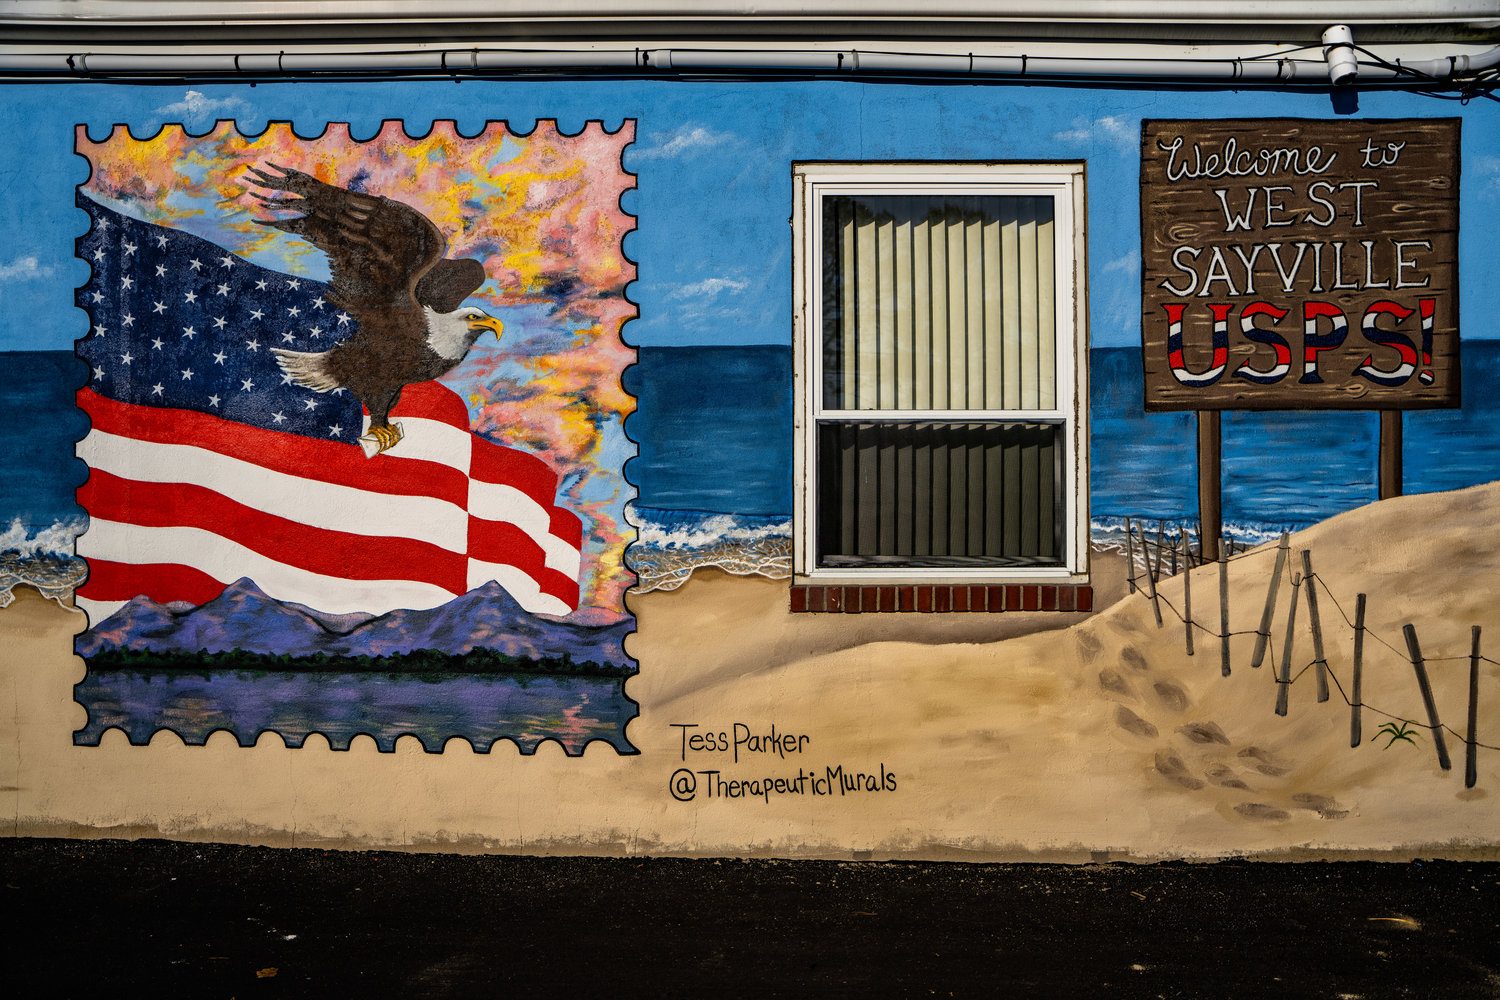 Echoing the original mural, artist Tess Parker included a postage stamp as part of her vision with an all-American theme featuring an eagle carrying a letter, a waving flag, and purple mountains on the south side of the West Sayville post office building.